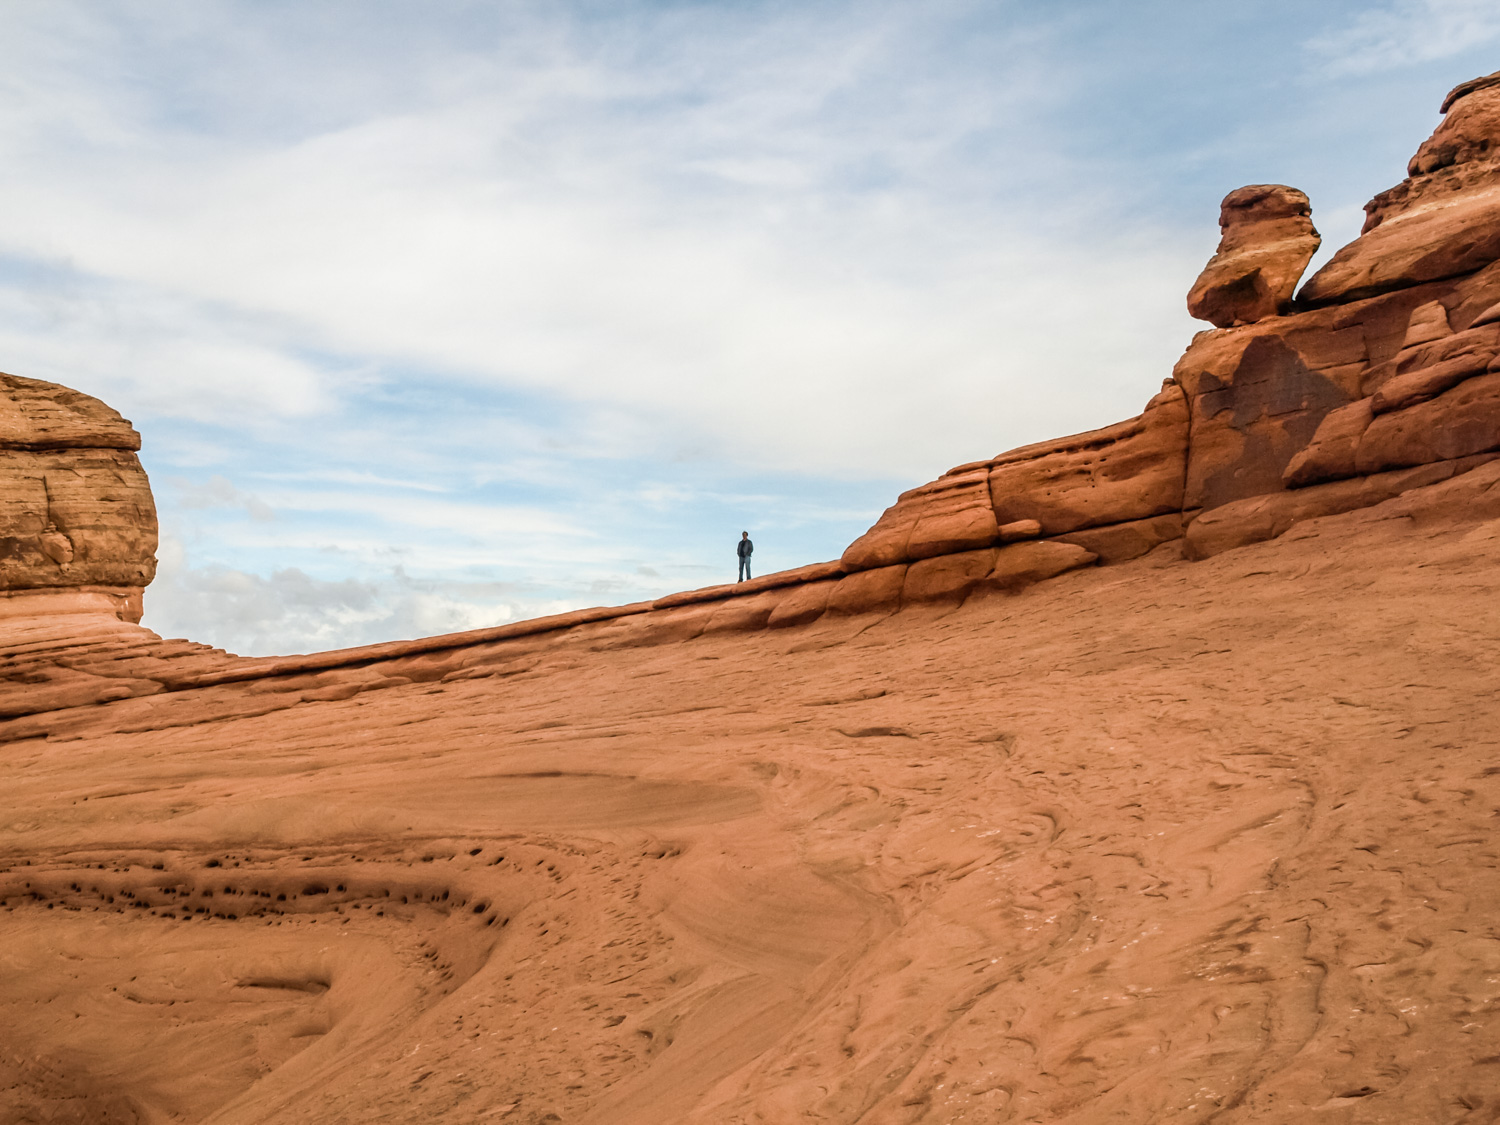 Image: When you're among the massive rock formations in Utah, you feel very small and vulnerable.